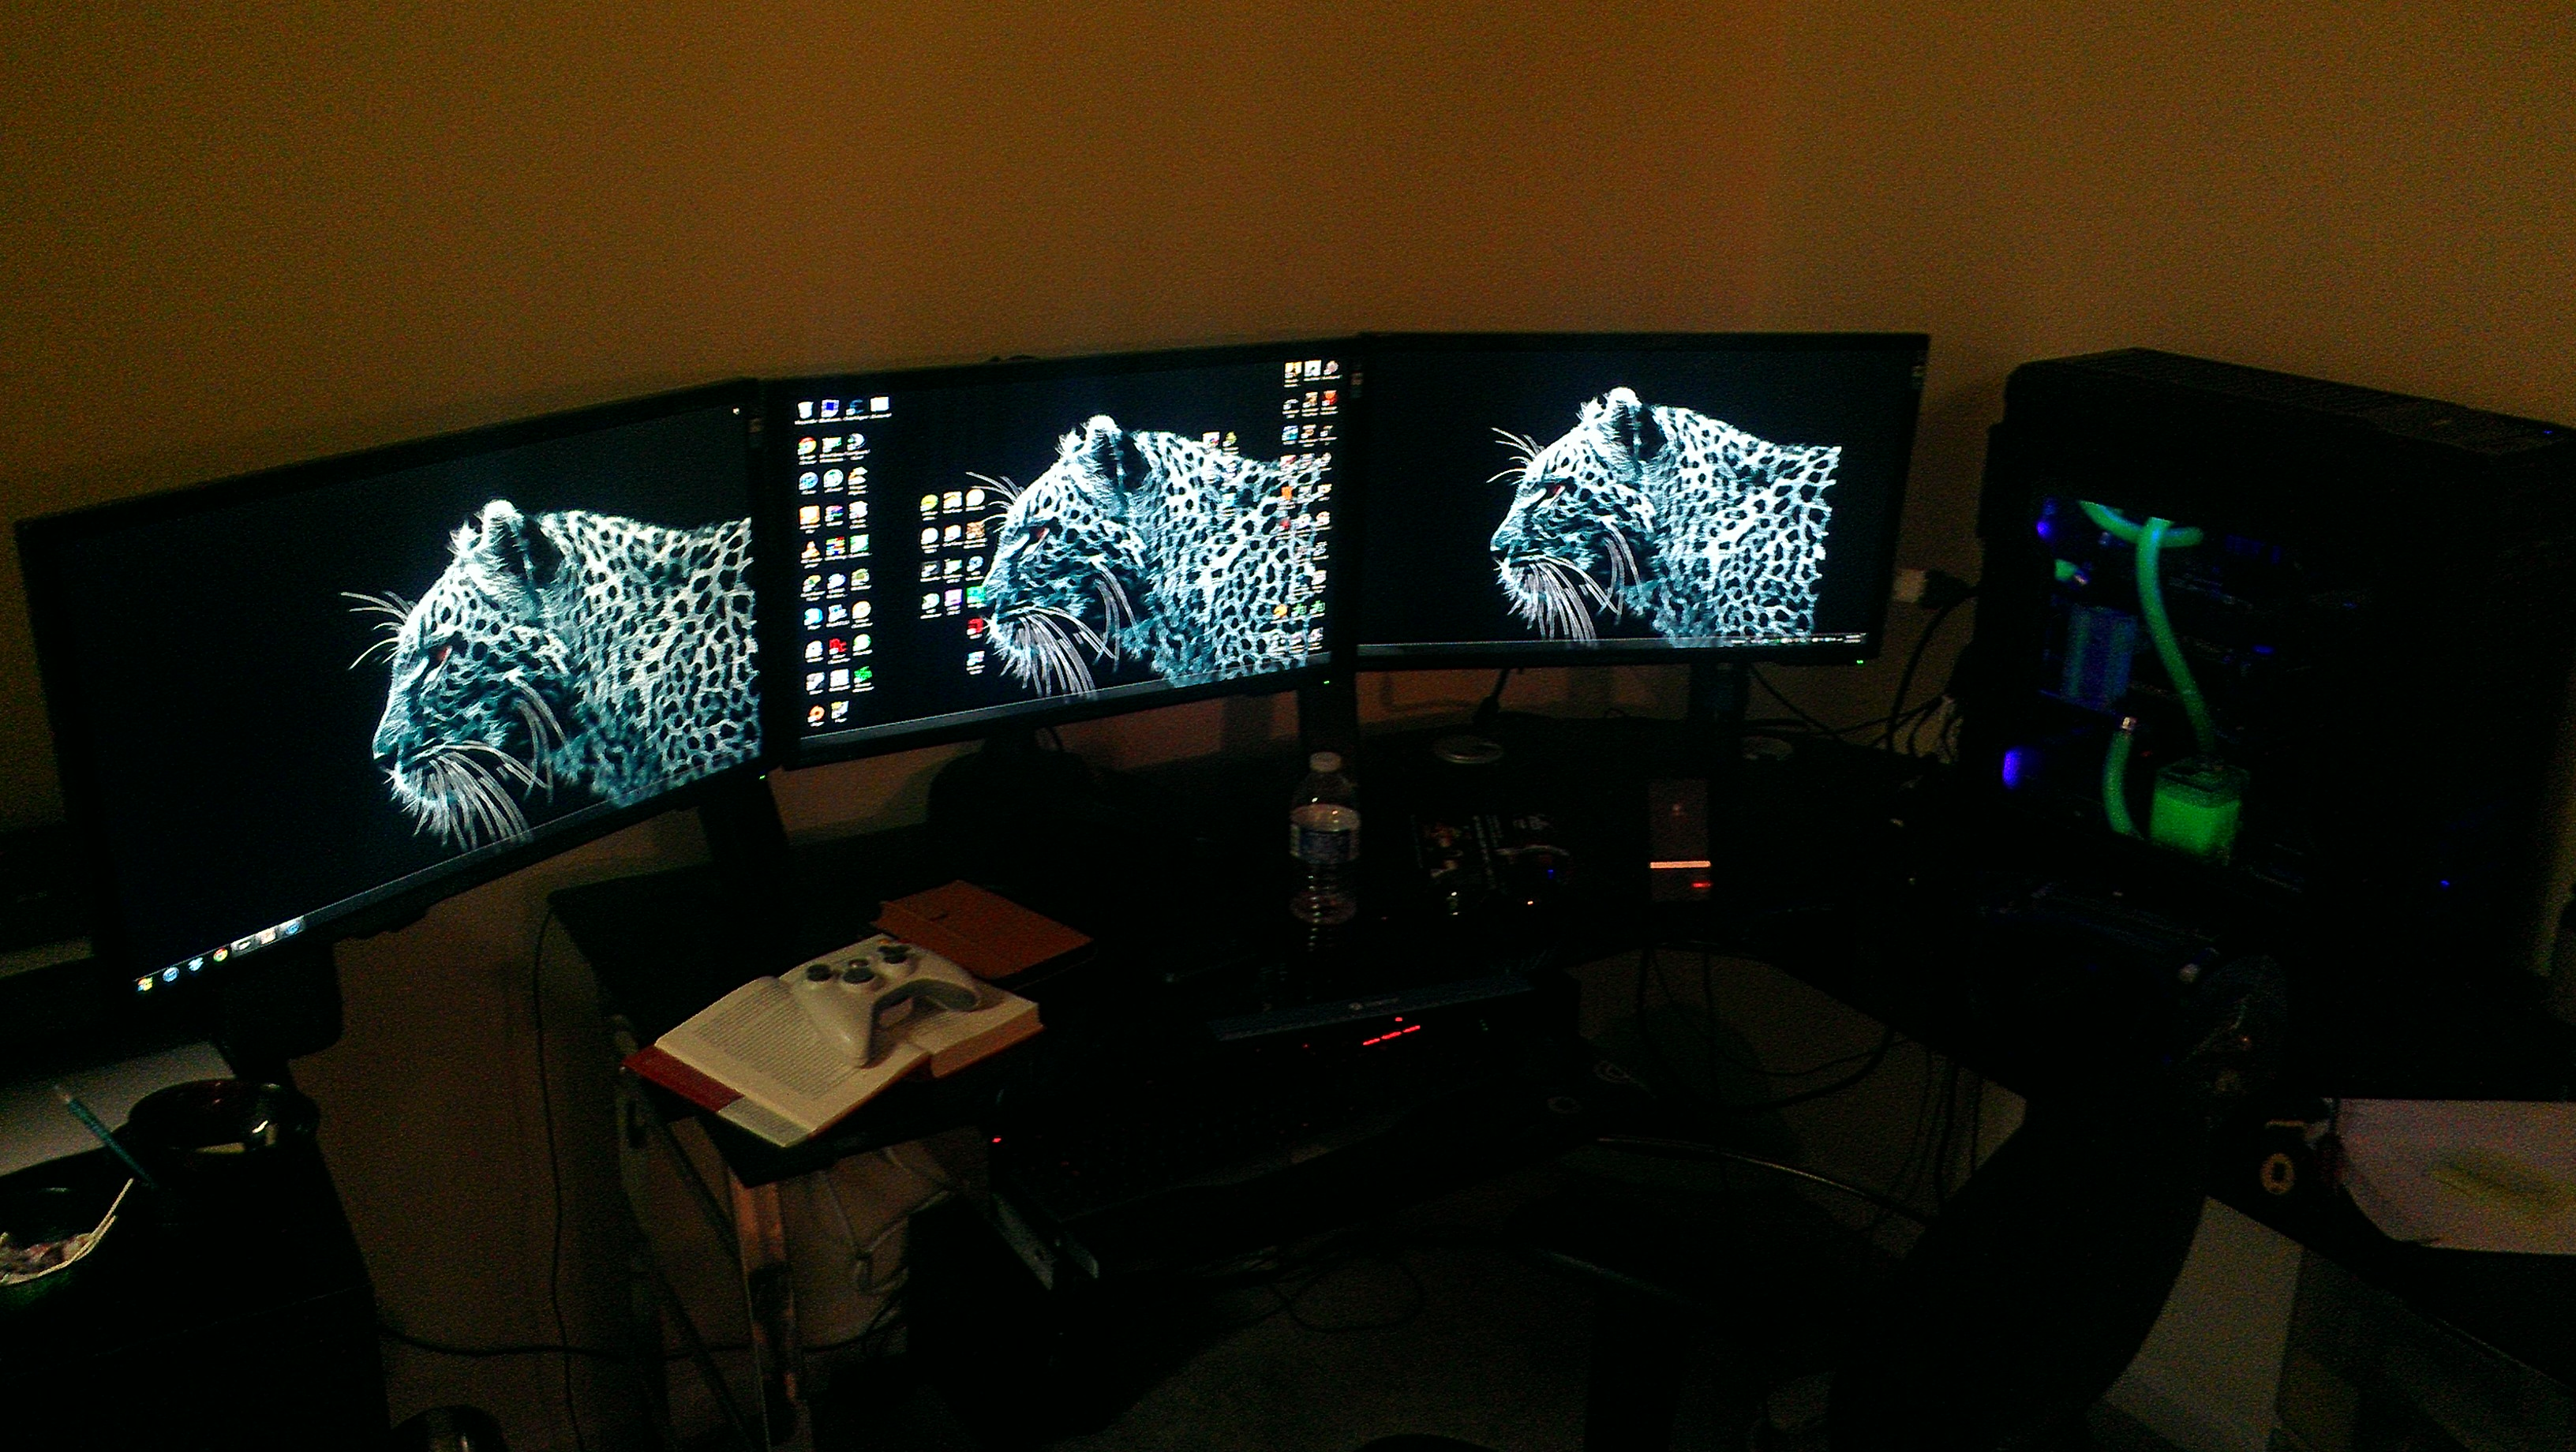 triple monitor 1080p wallpaper steam